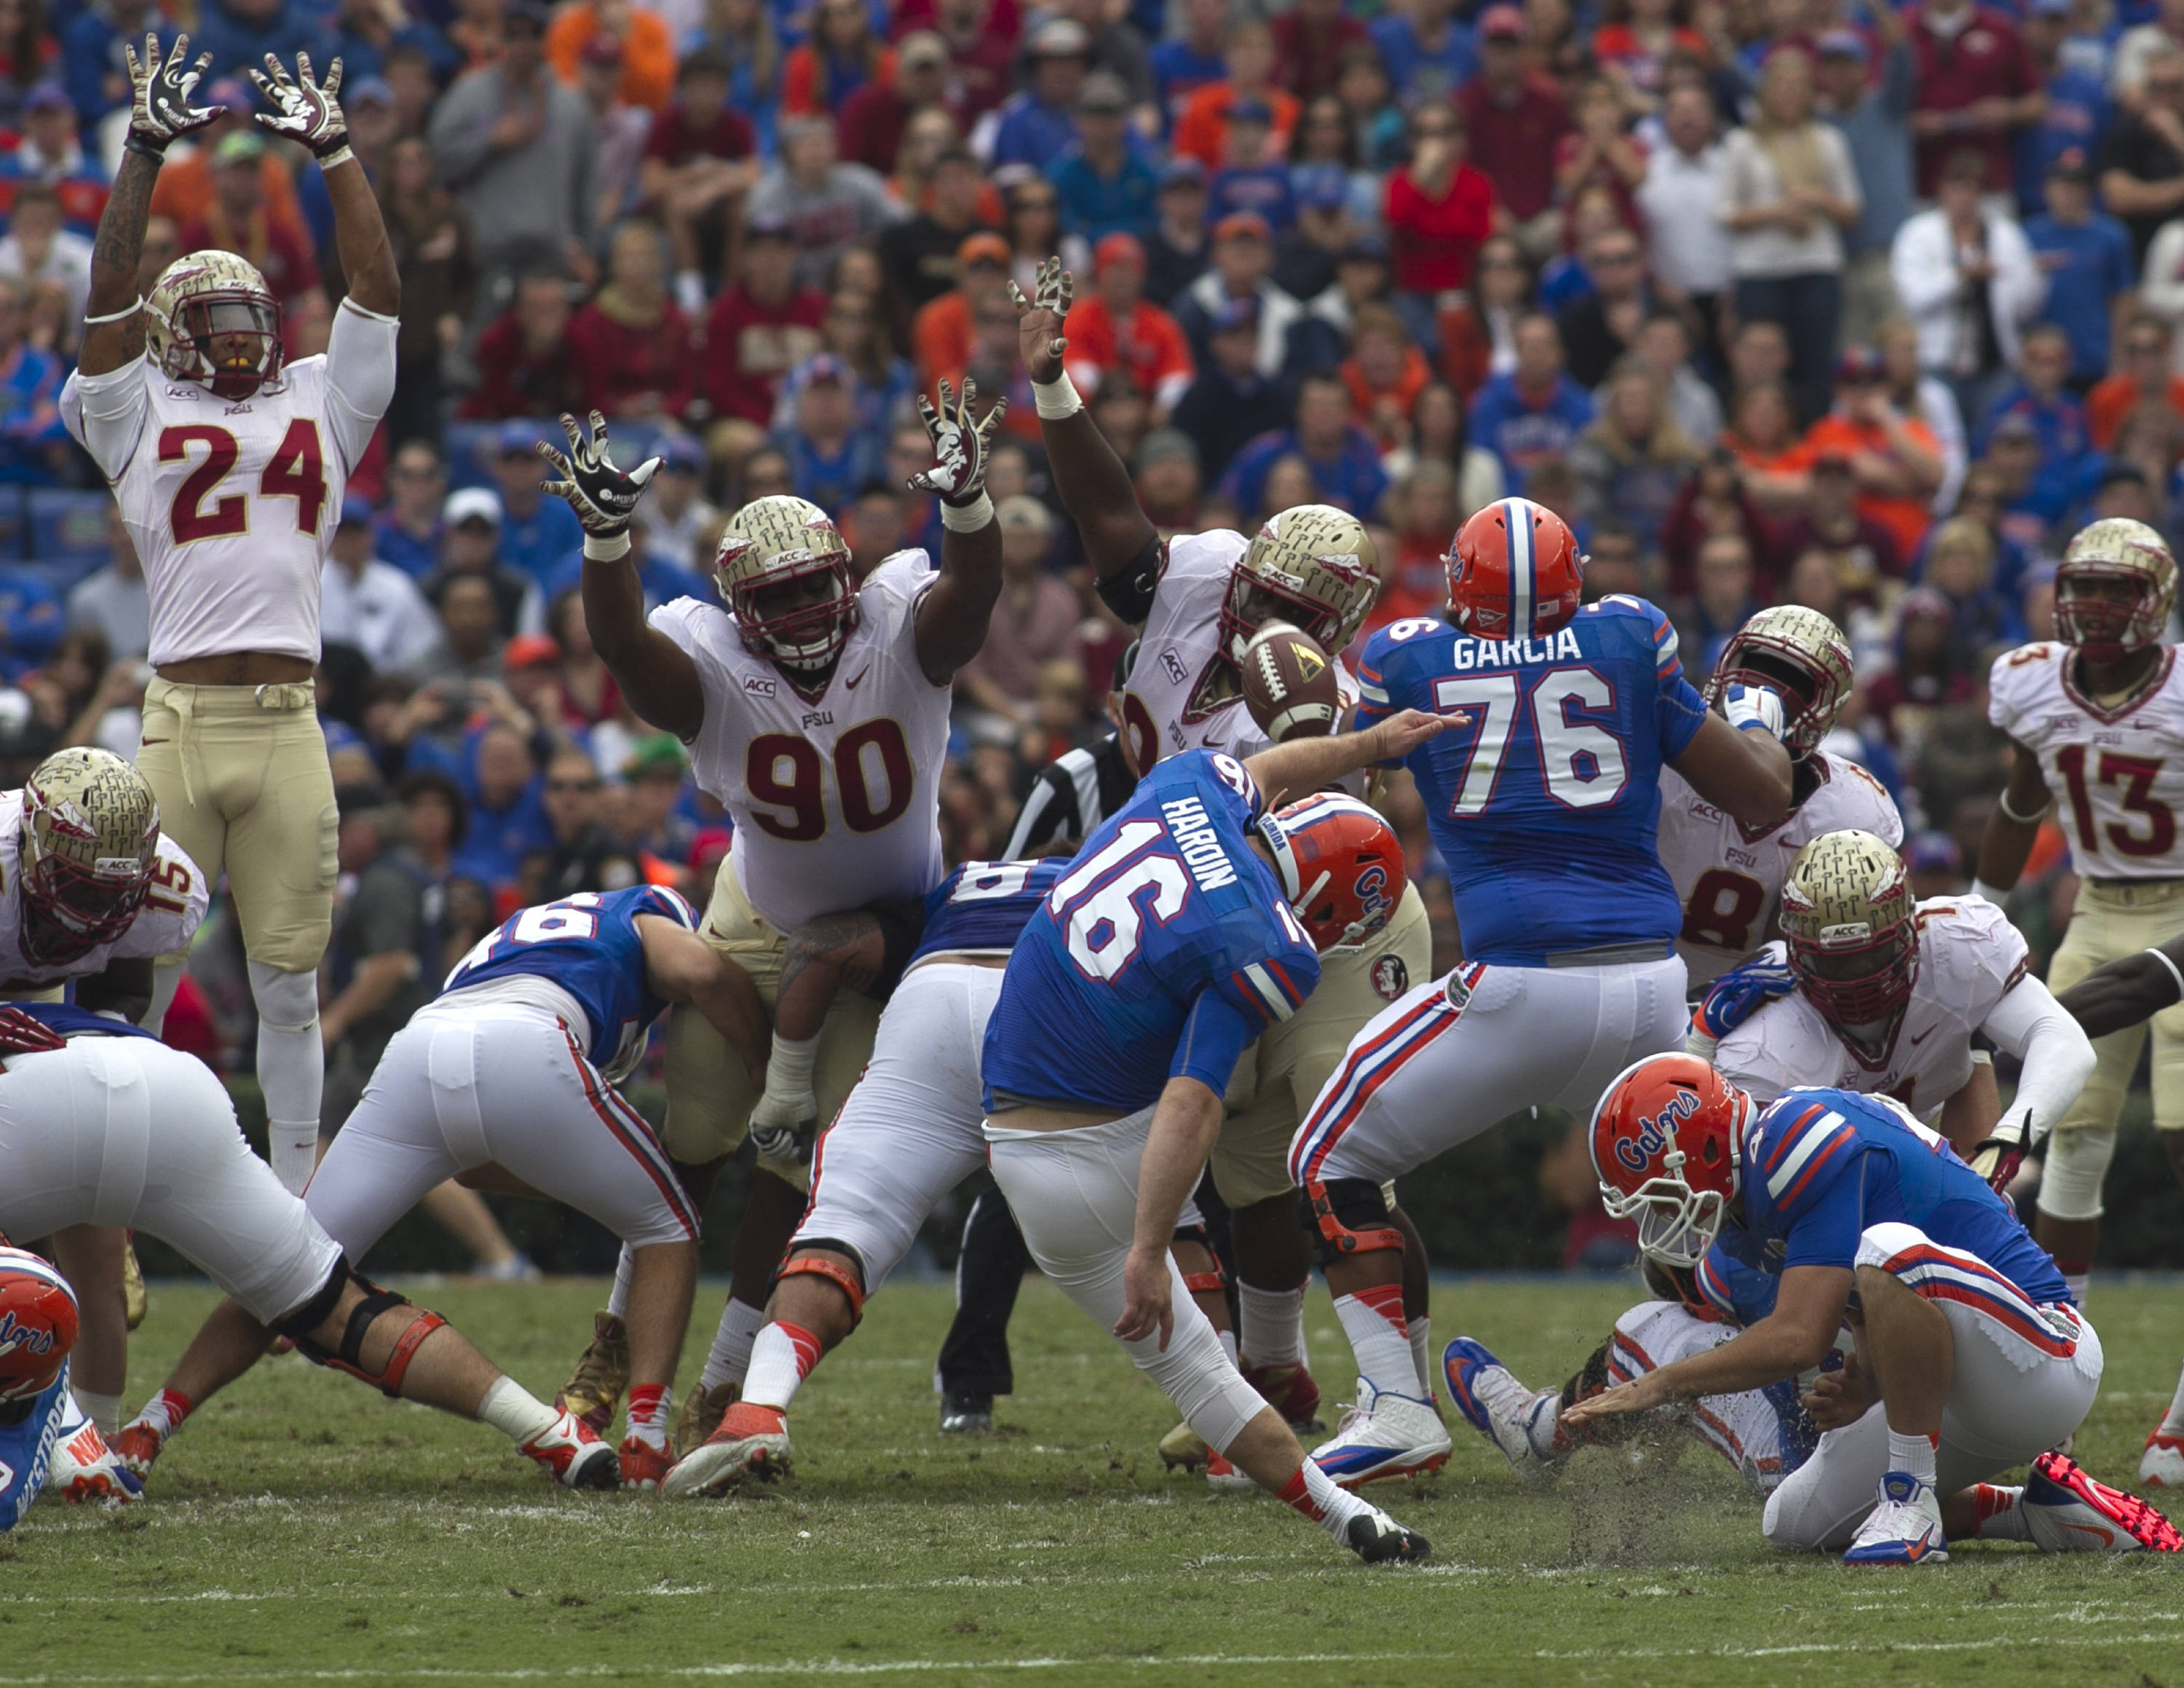 Terrance Smith (90) and Eddie Goldman (90), with a defensive effort contributing to a missed Gator field goal, FSU vs Florida, 11-30-13,  (Photo by Steve Musco)